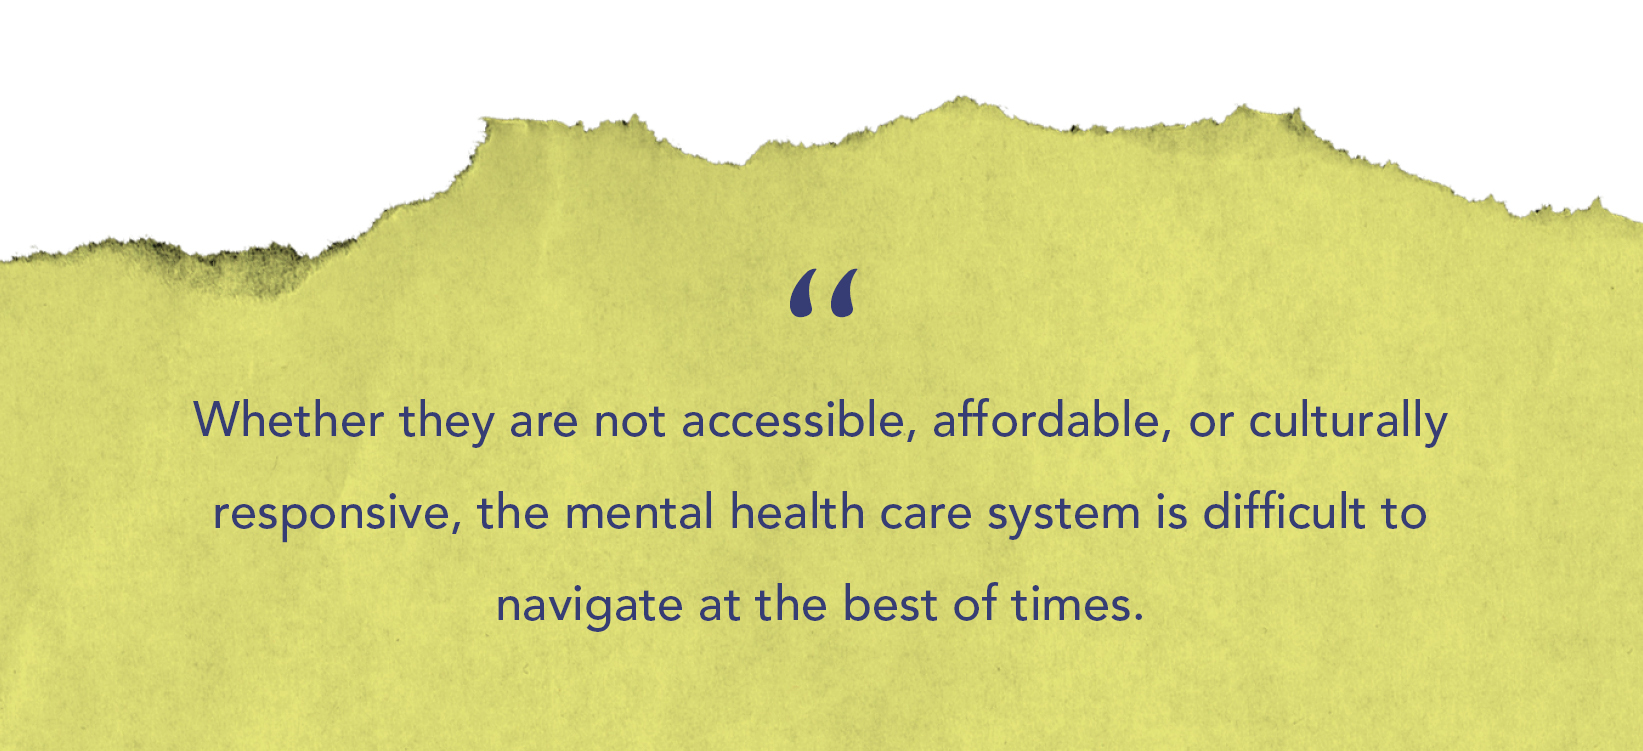 """Whether they are not accessible, affordable, or culturally responsive, the mental health care system is difficult to navigate at the best of times."" quote on light green rough paper textured background"